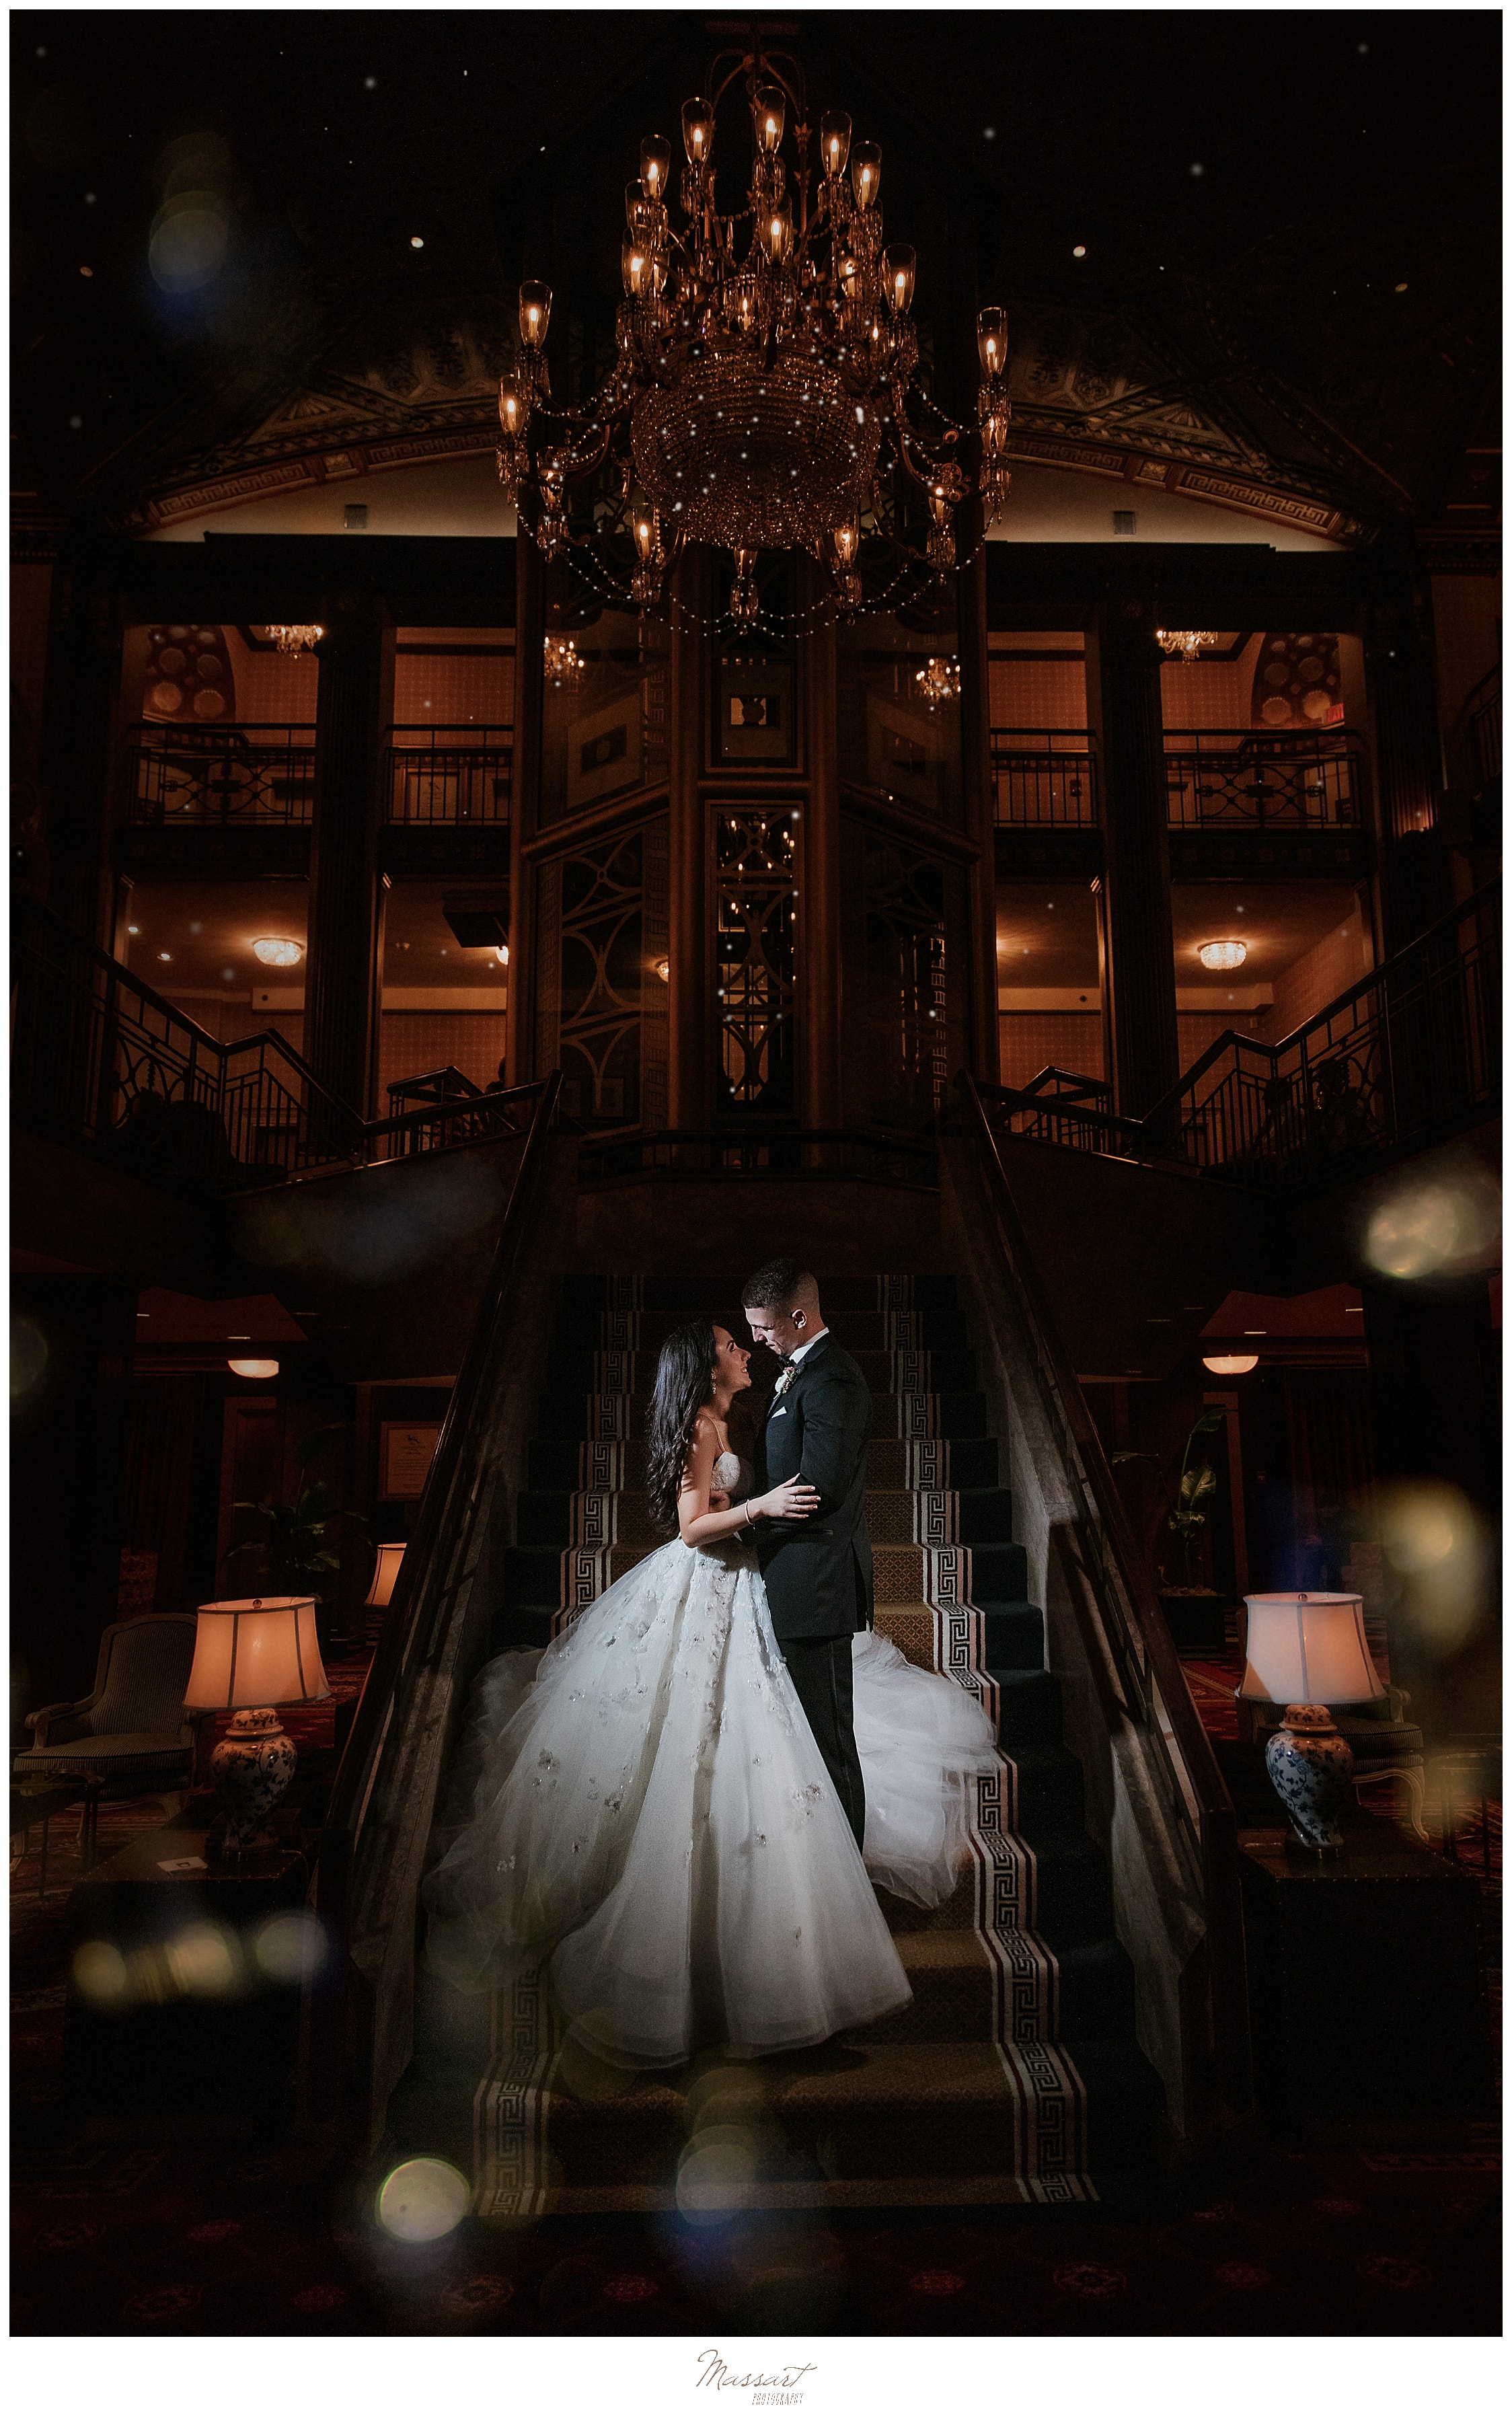 nighttime wedding portraits at Graduate Providence with wedding photographers Massart Photography